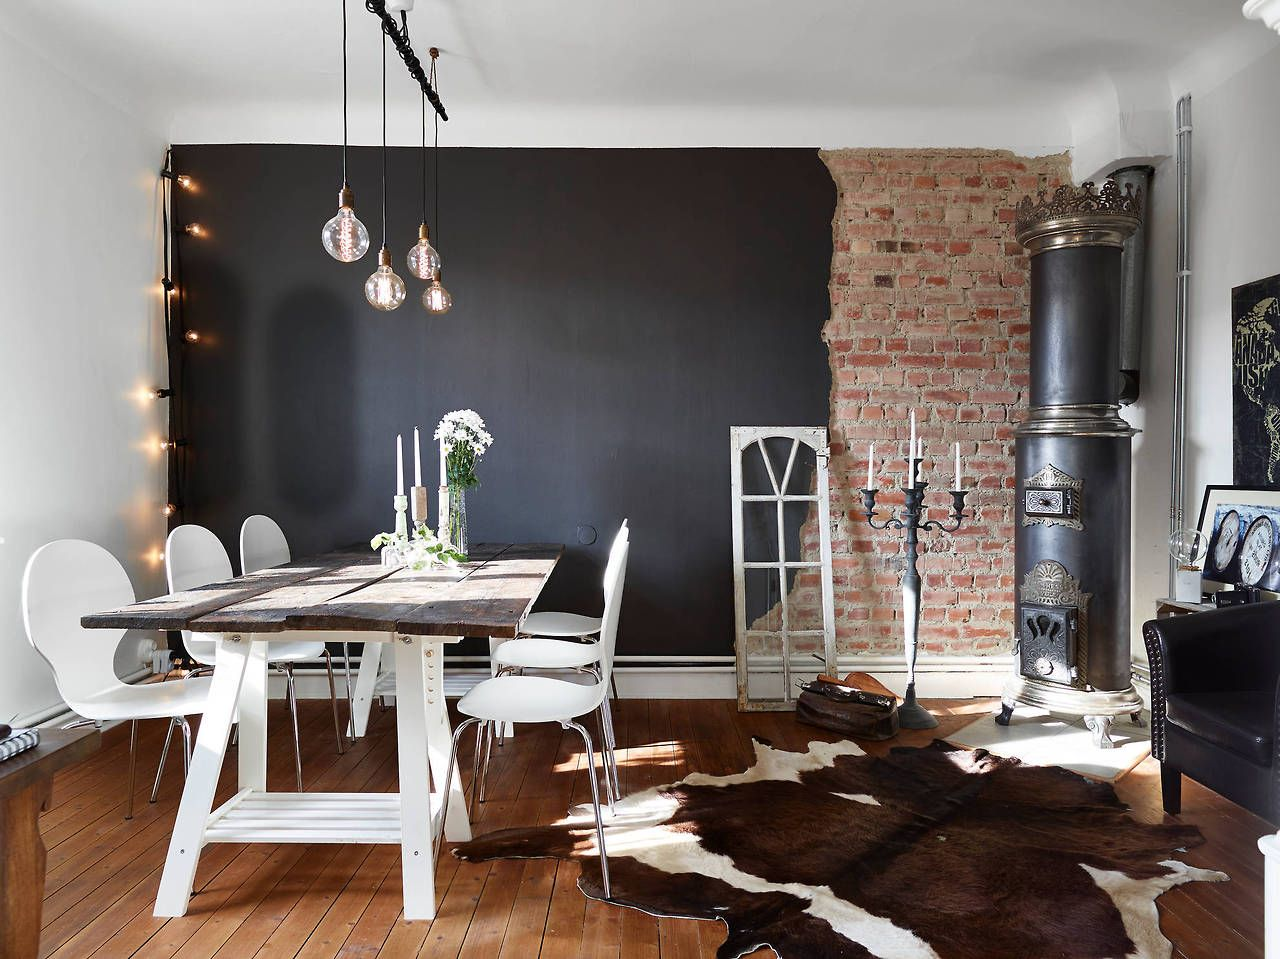 Dining room with black wall & exposed brick